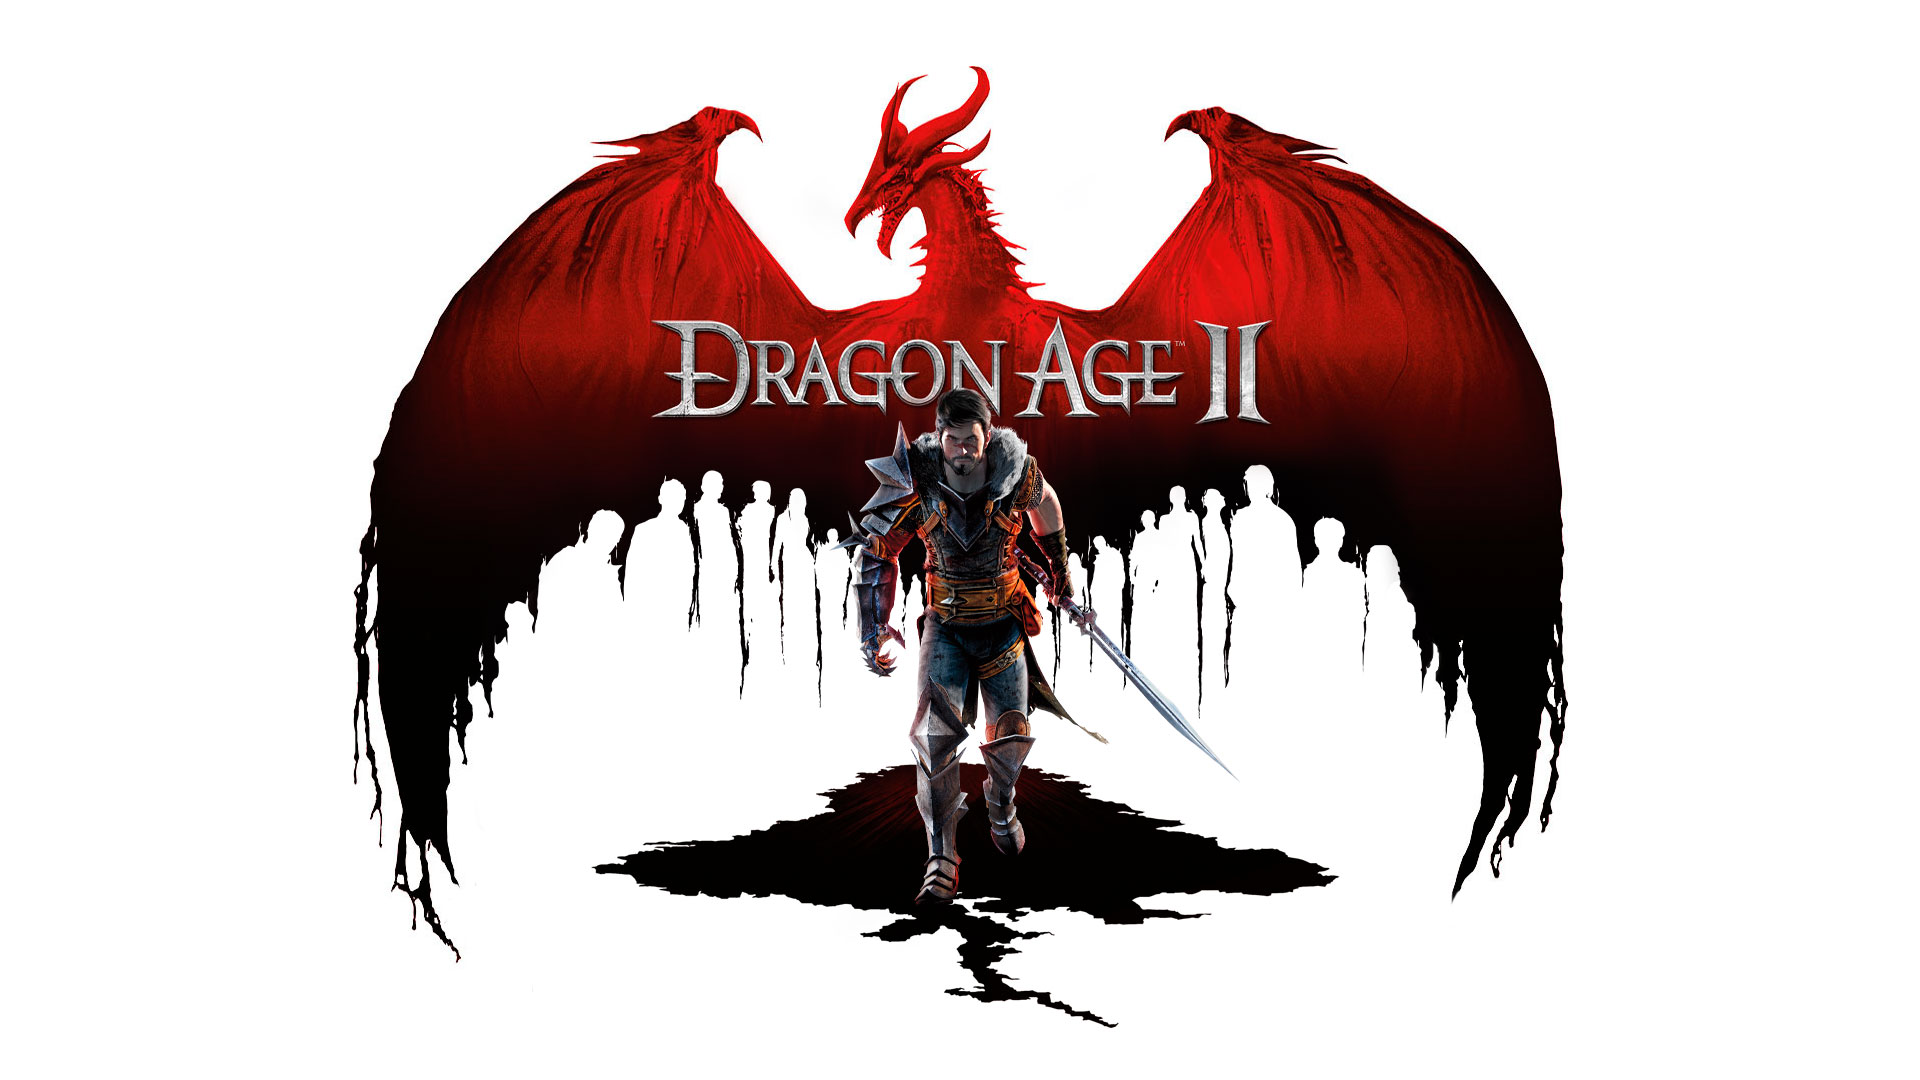 Dragon Age 2 art